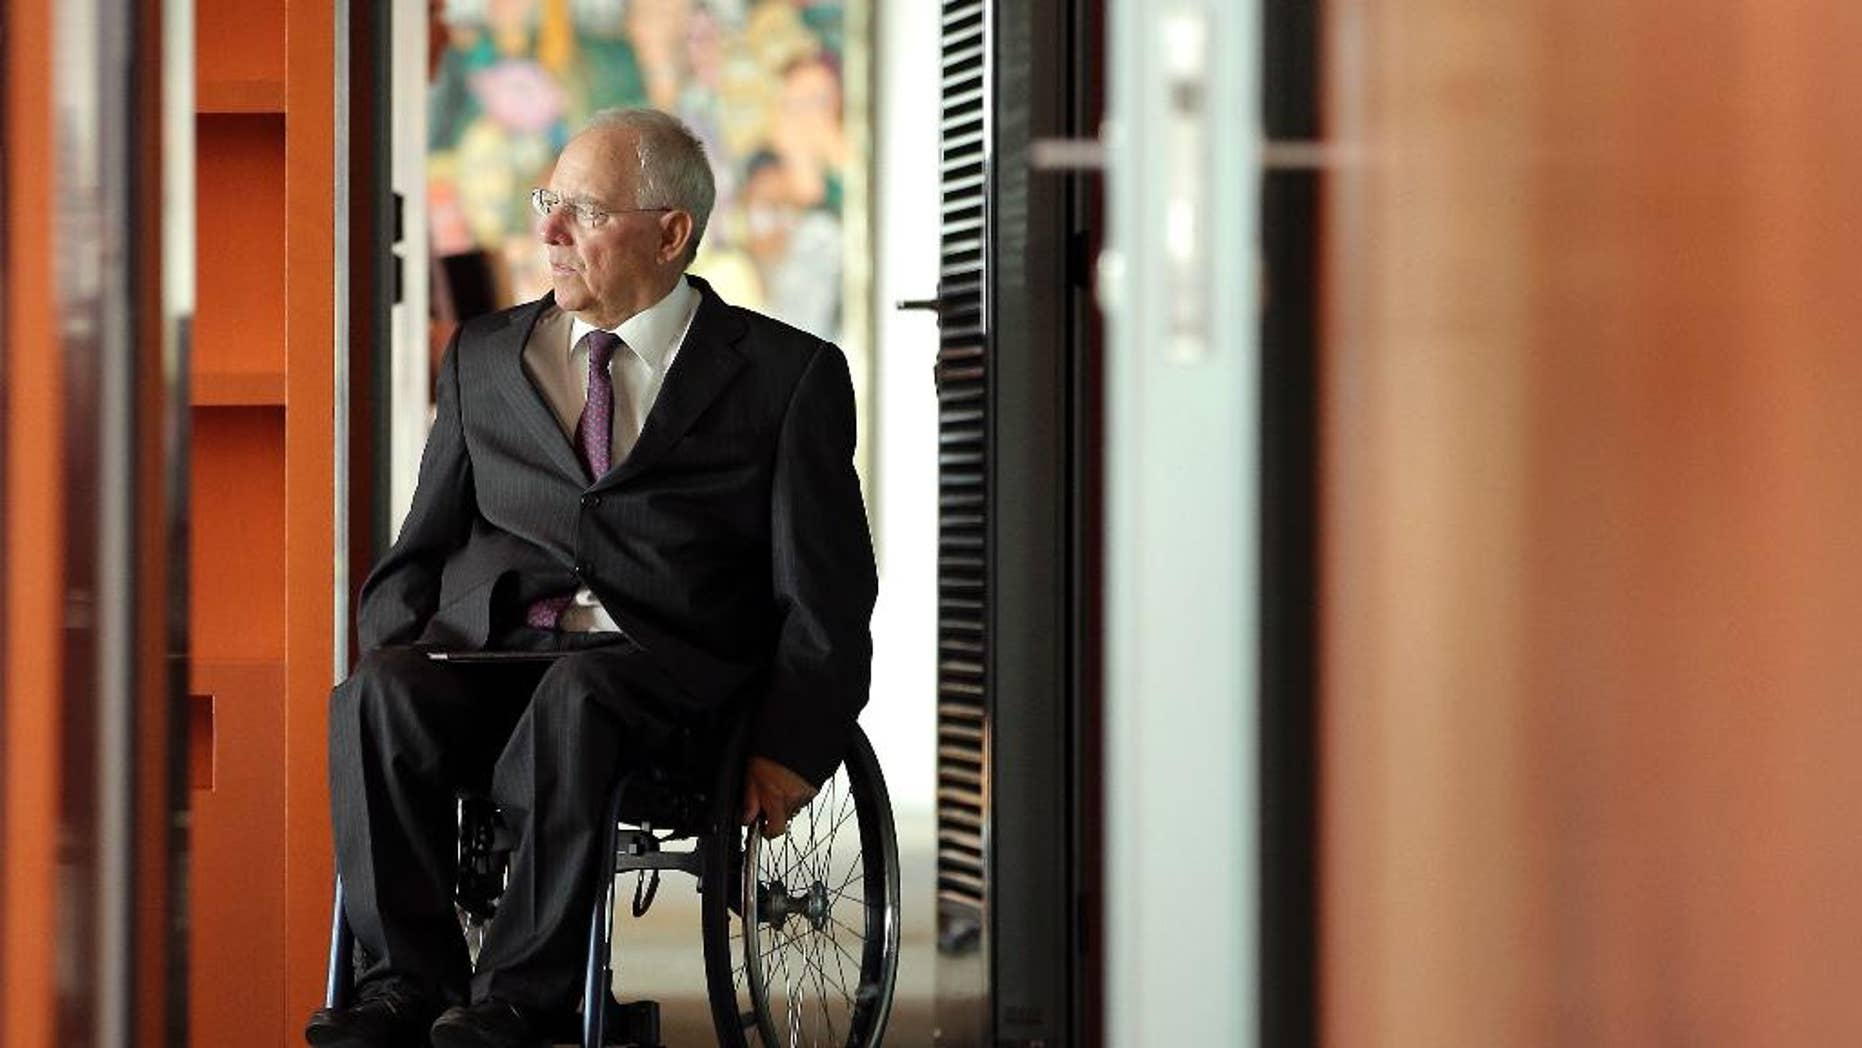 German Finance Minister Wolfgang Schaeuble arrives for the weekly cabinet meeting at the Chancellery in Berlin, Germany, Wednesday, May 18, 2016. (AP Photo/Michael Sohn)